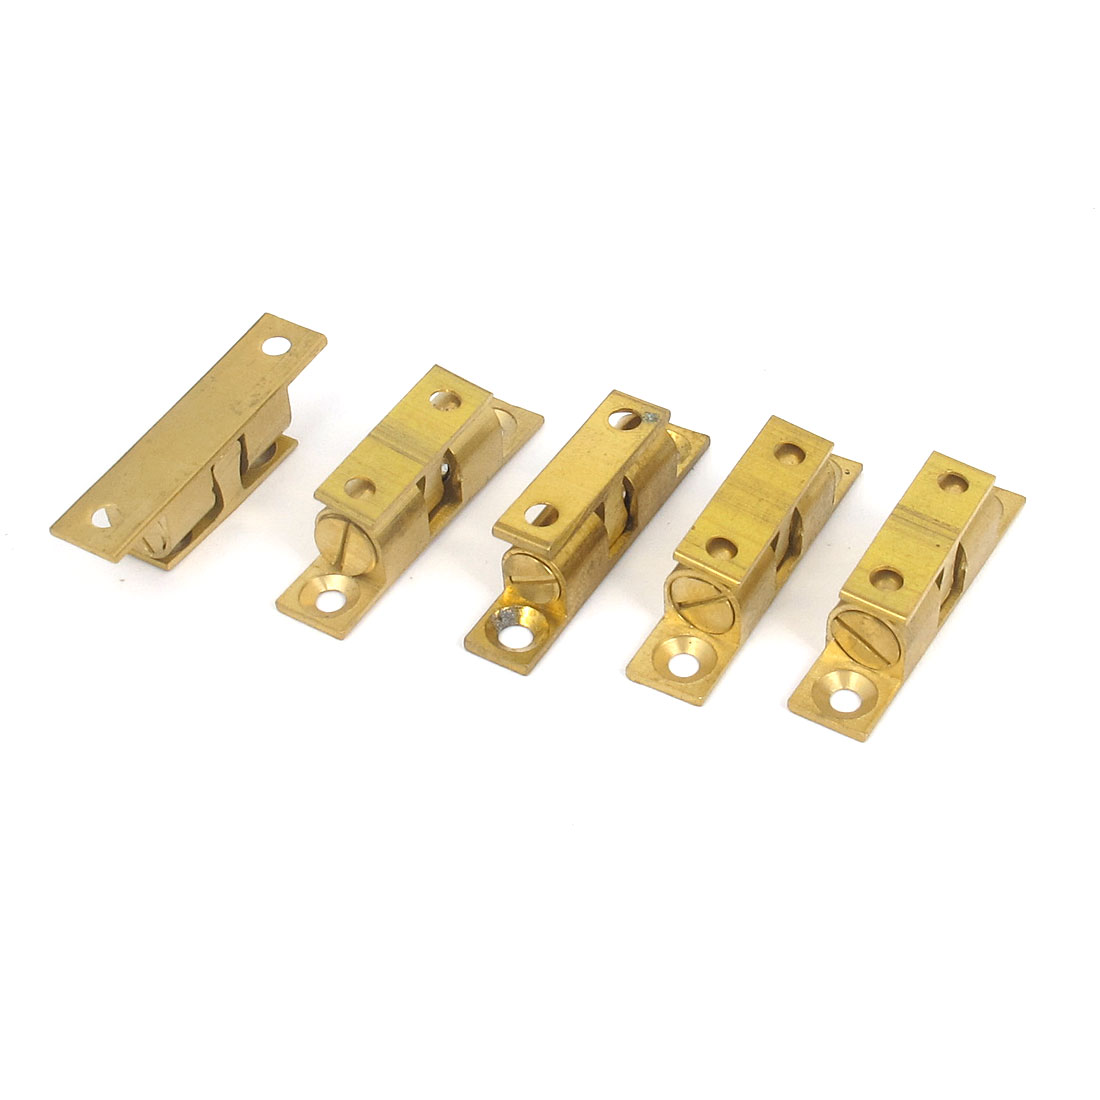 Door Cabinet Brass Double Ball Roller Catch Hardware 40mm Length 5 Pcs